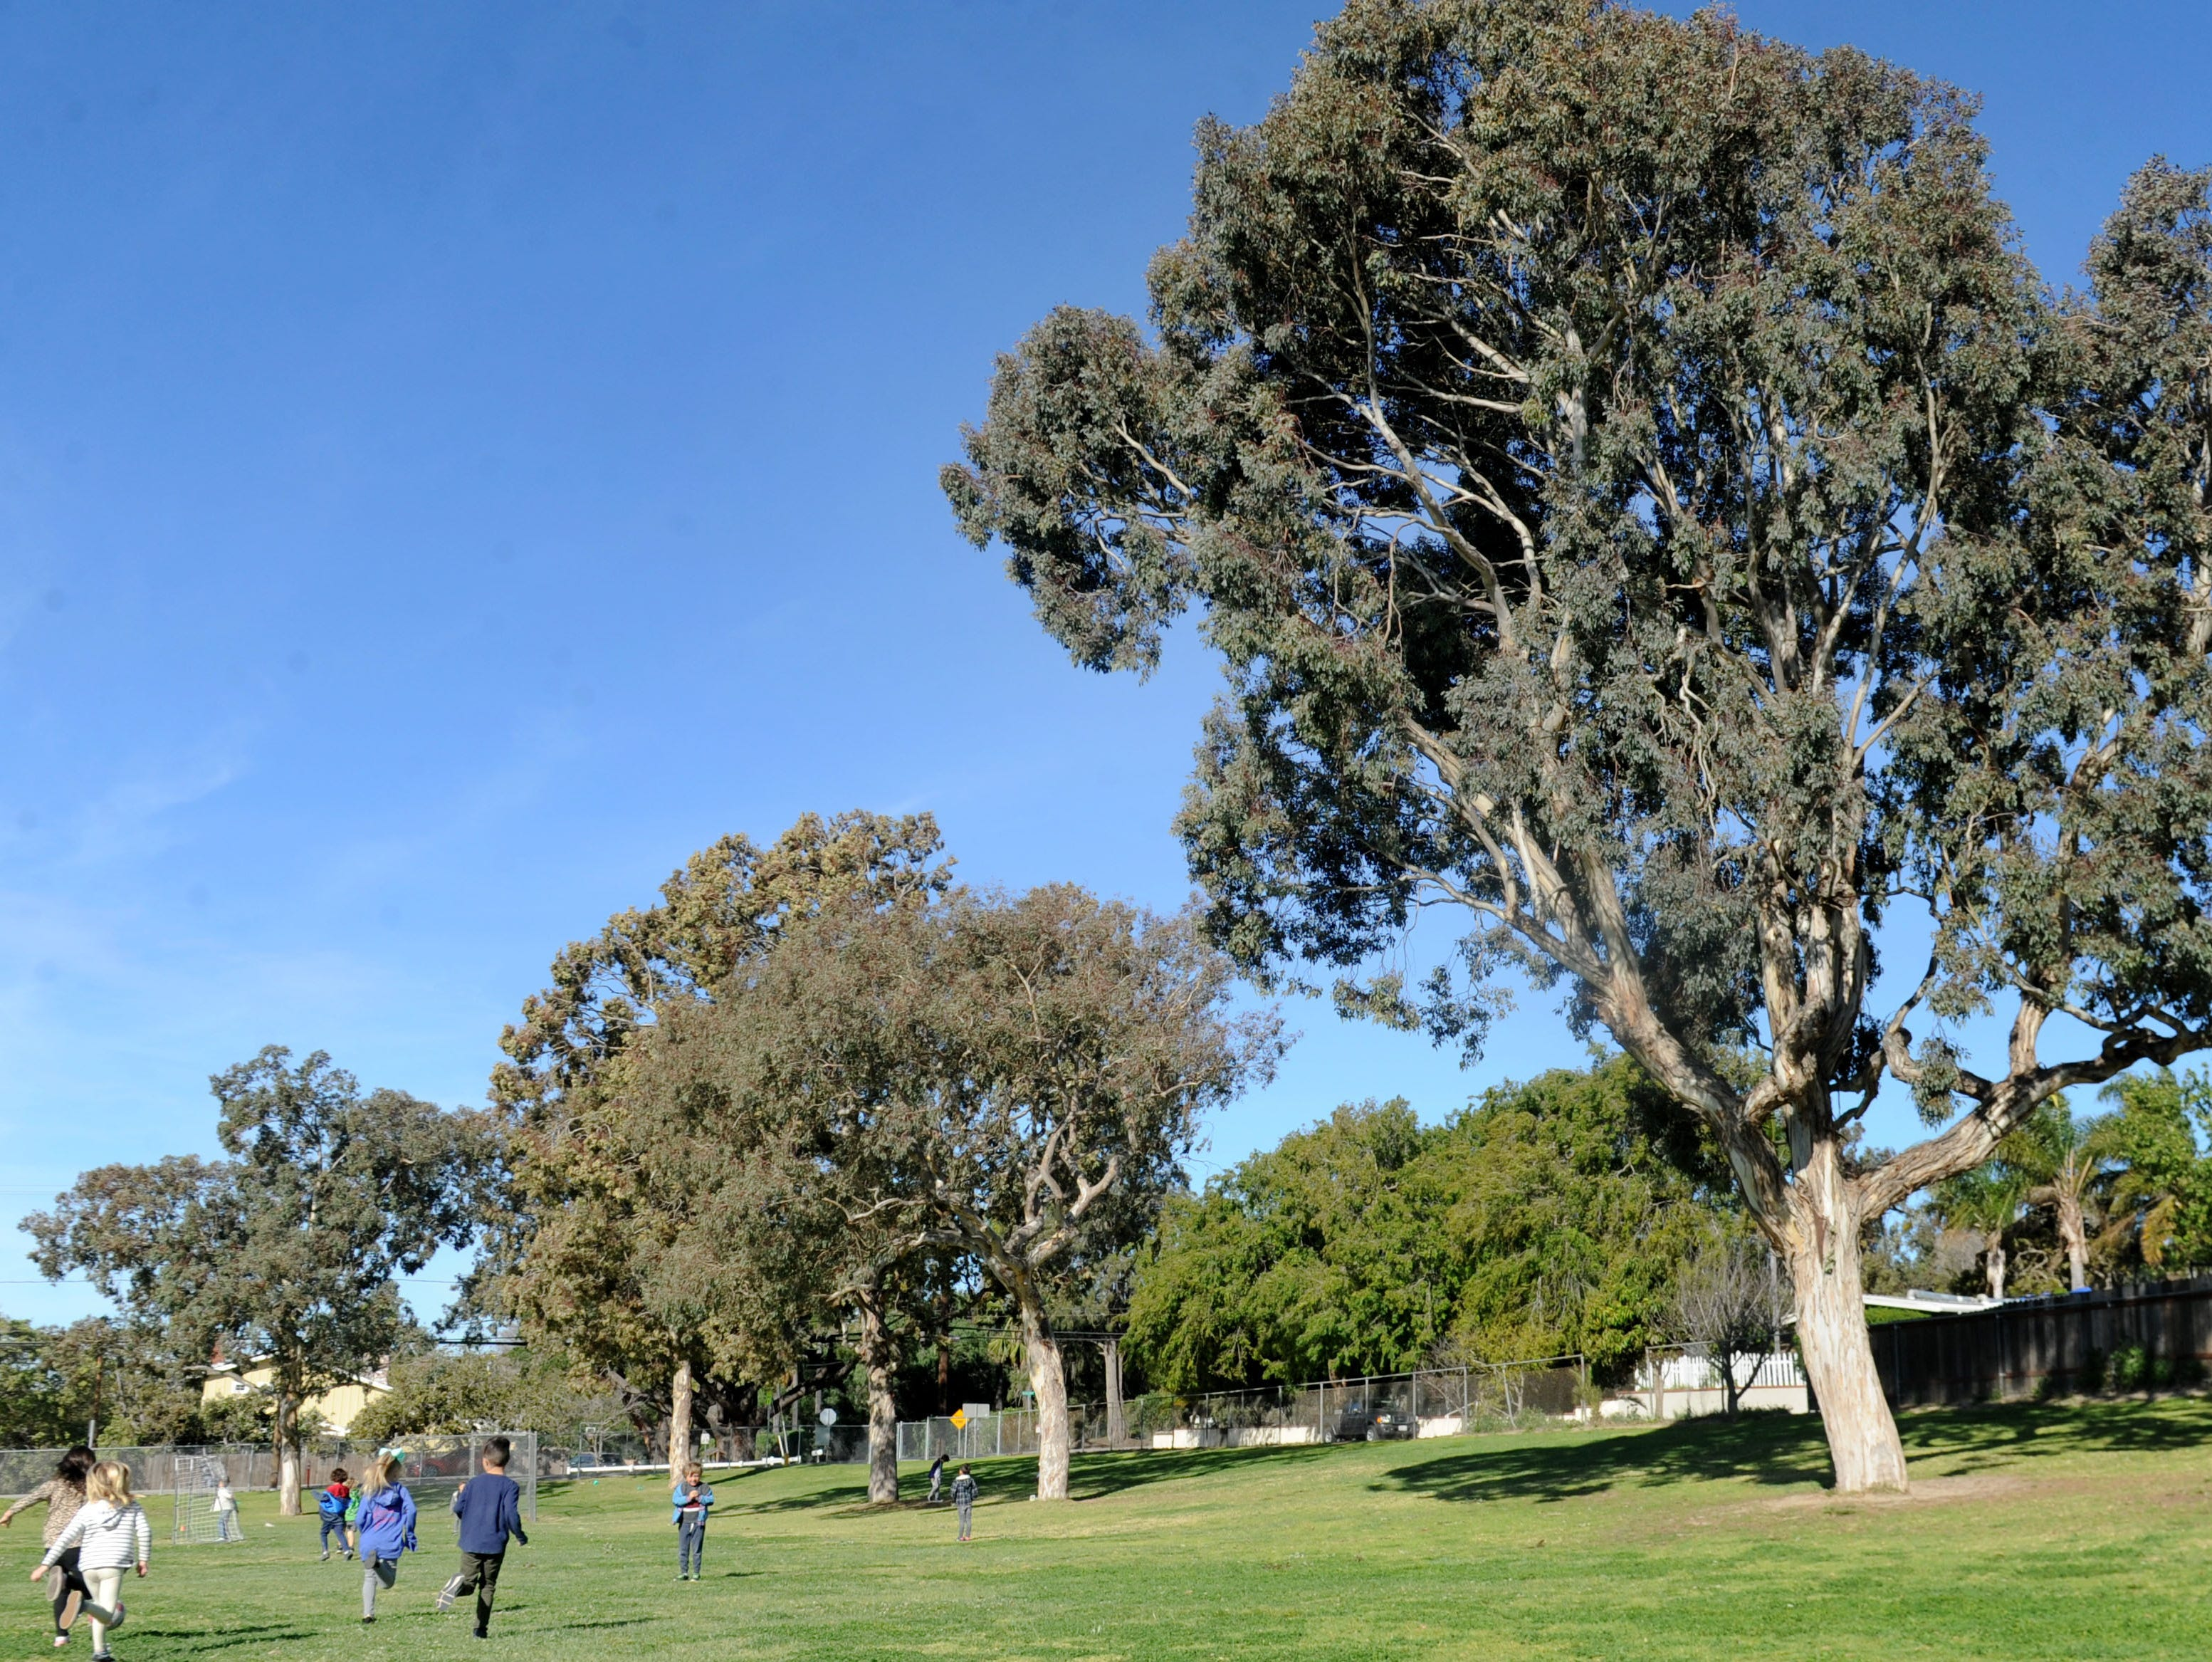 Students at Camarillo Heights School run and play in the big trees in the school's playing fields.The school is the oldest operating school that has always been part of the Pleasant Valley School District, which is celebrating its 150th anniversary at a celebration later this month.